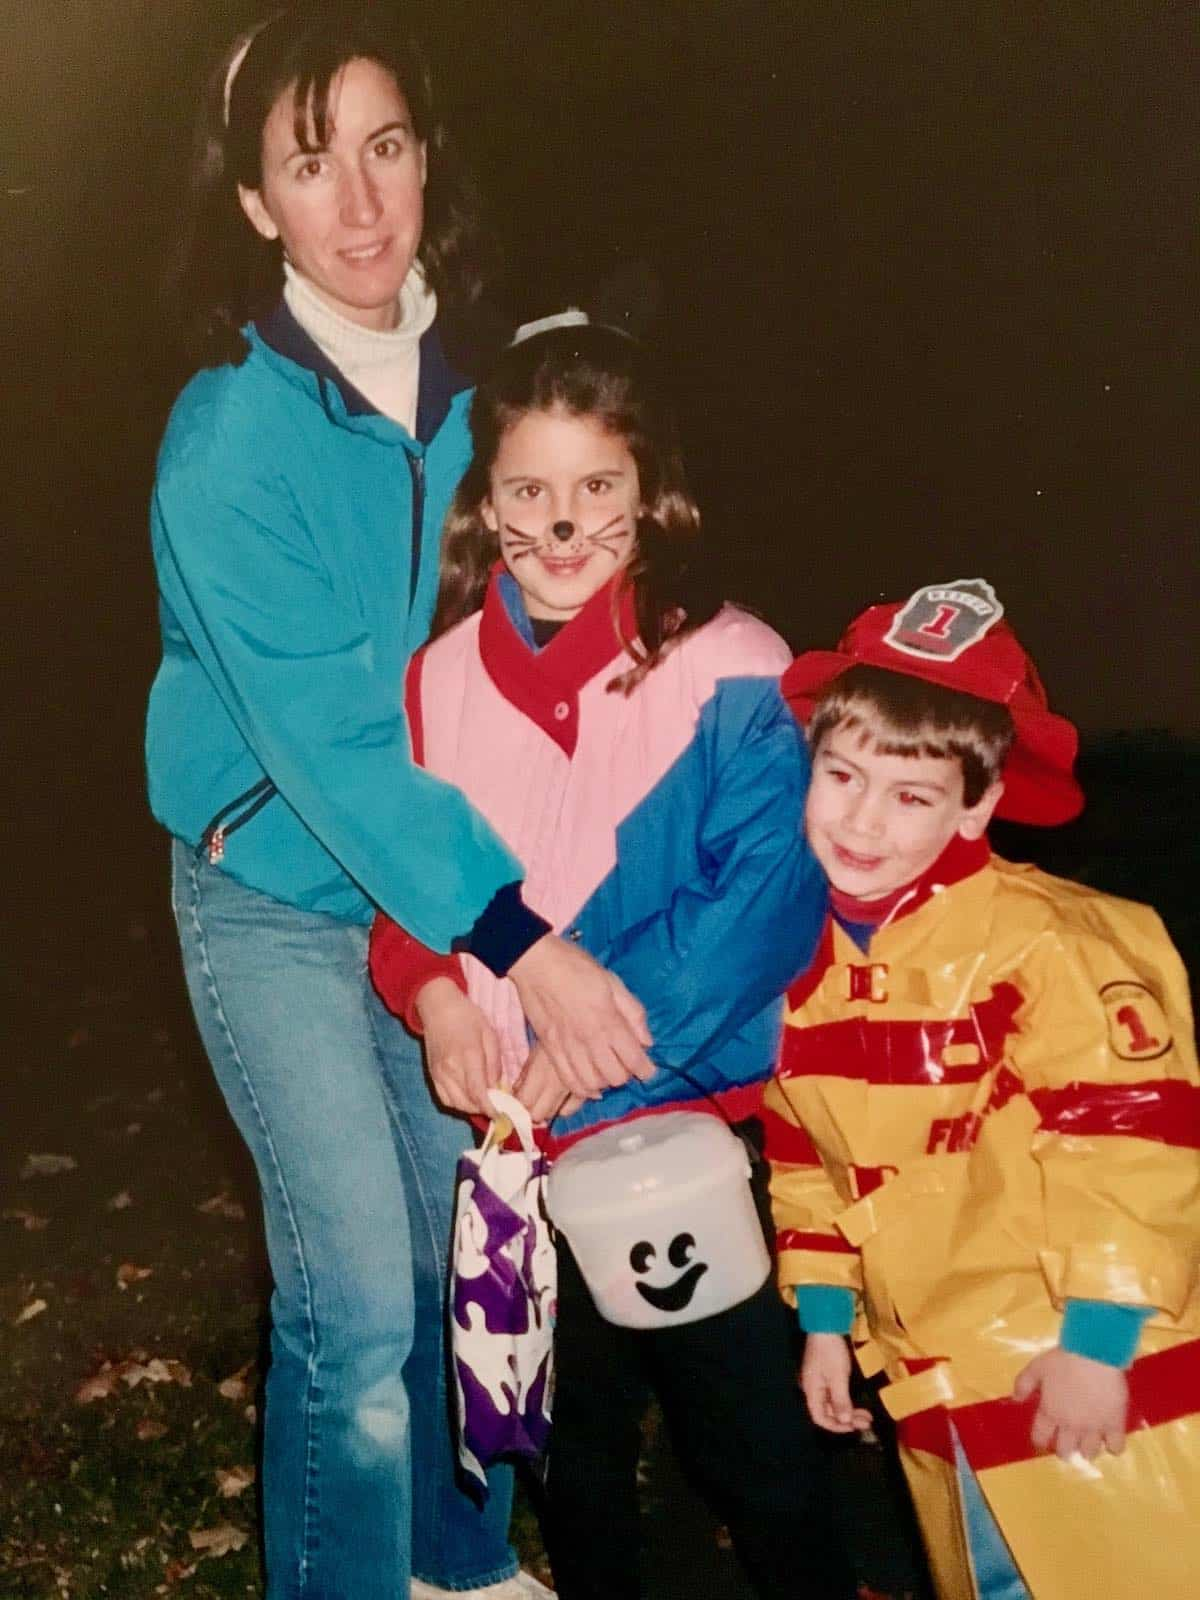 I used to steal all their peanut butter cups Halloween photo of me and kids